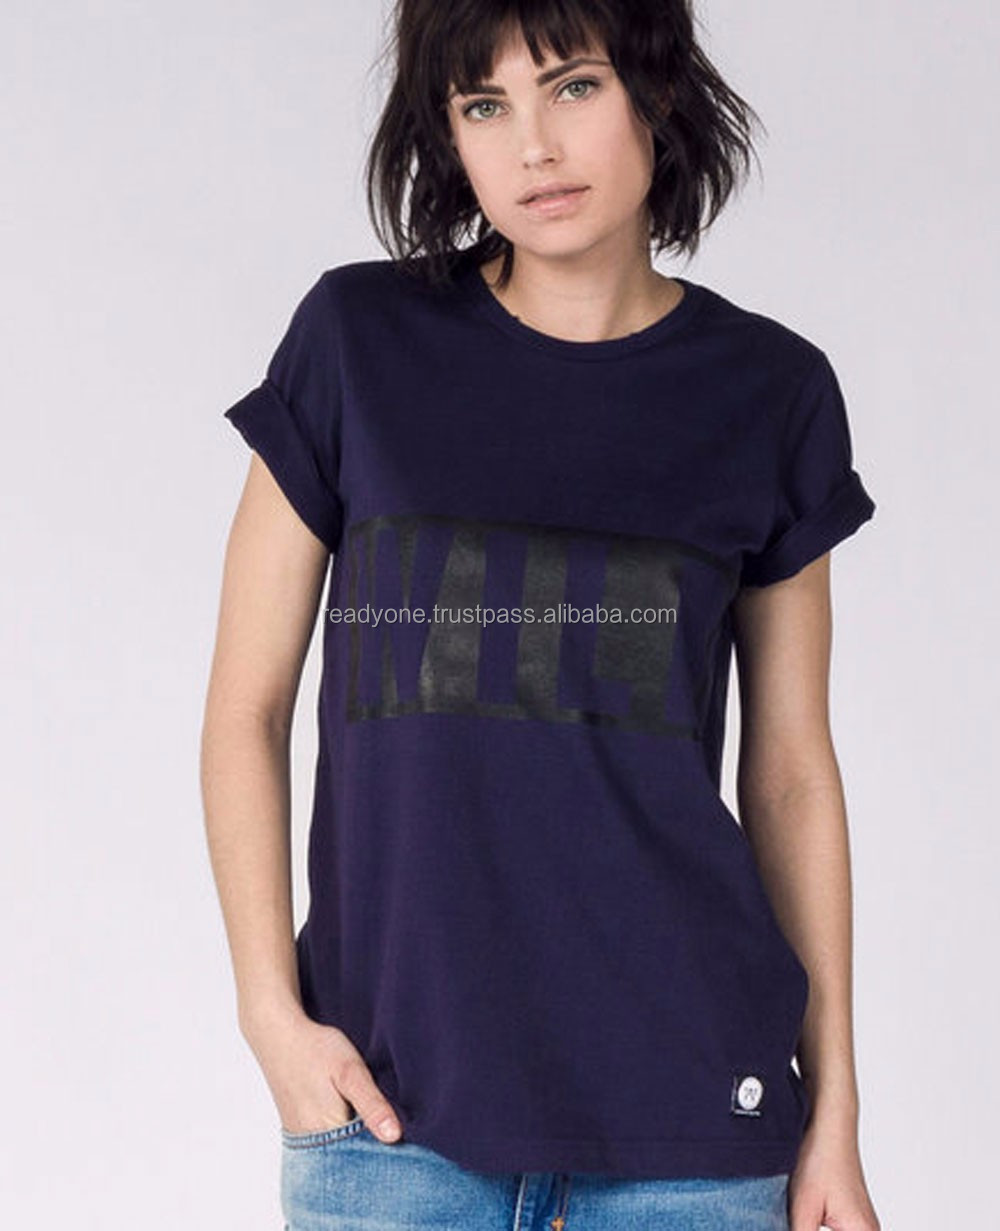 Made in thailand products 95% cotton 5% elastane two color t shirt women fashion clothing wholesale